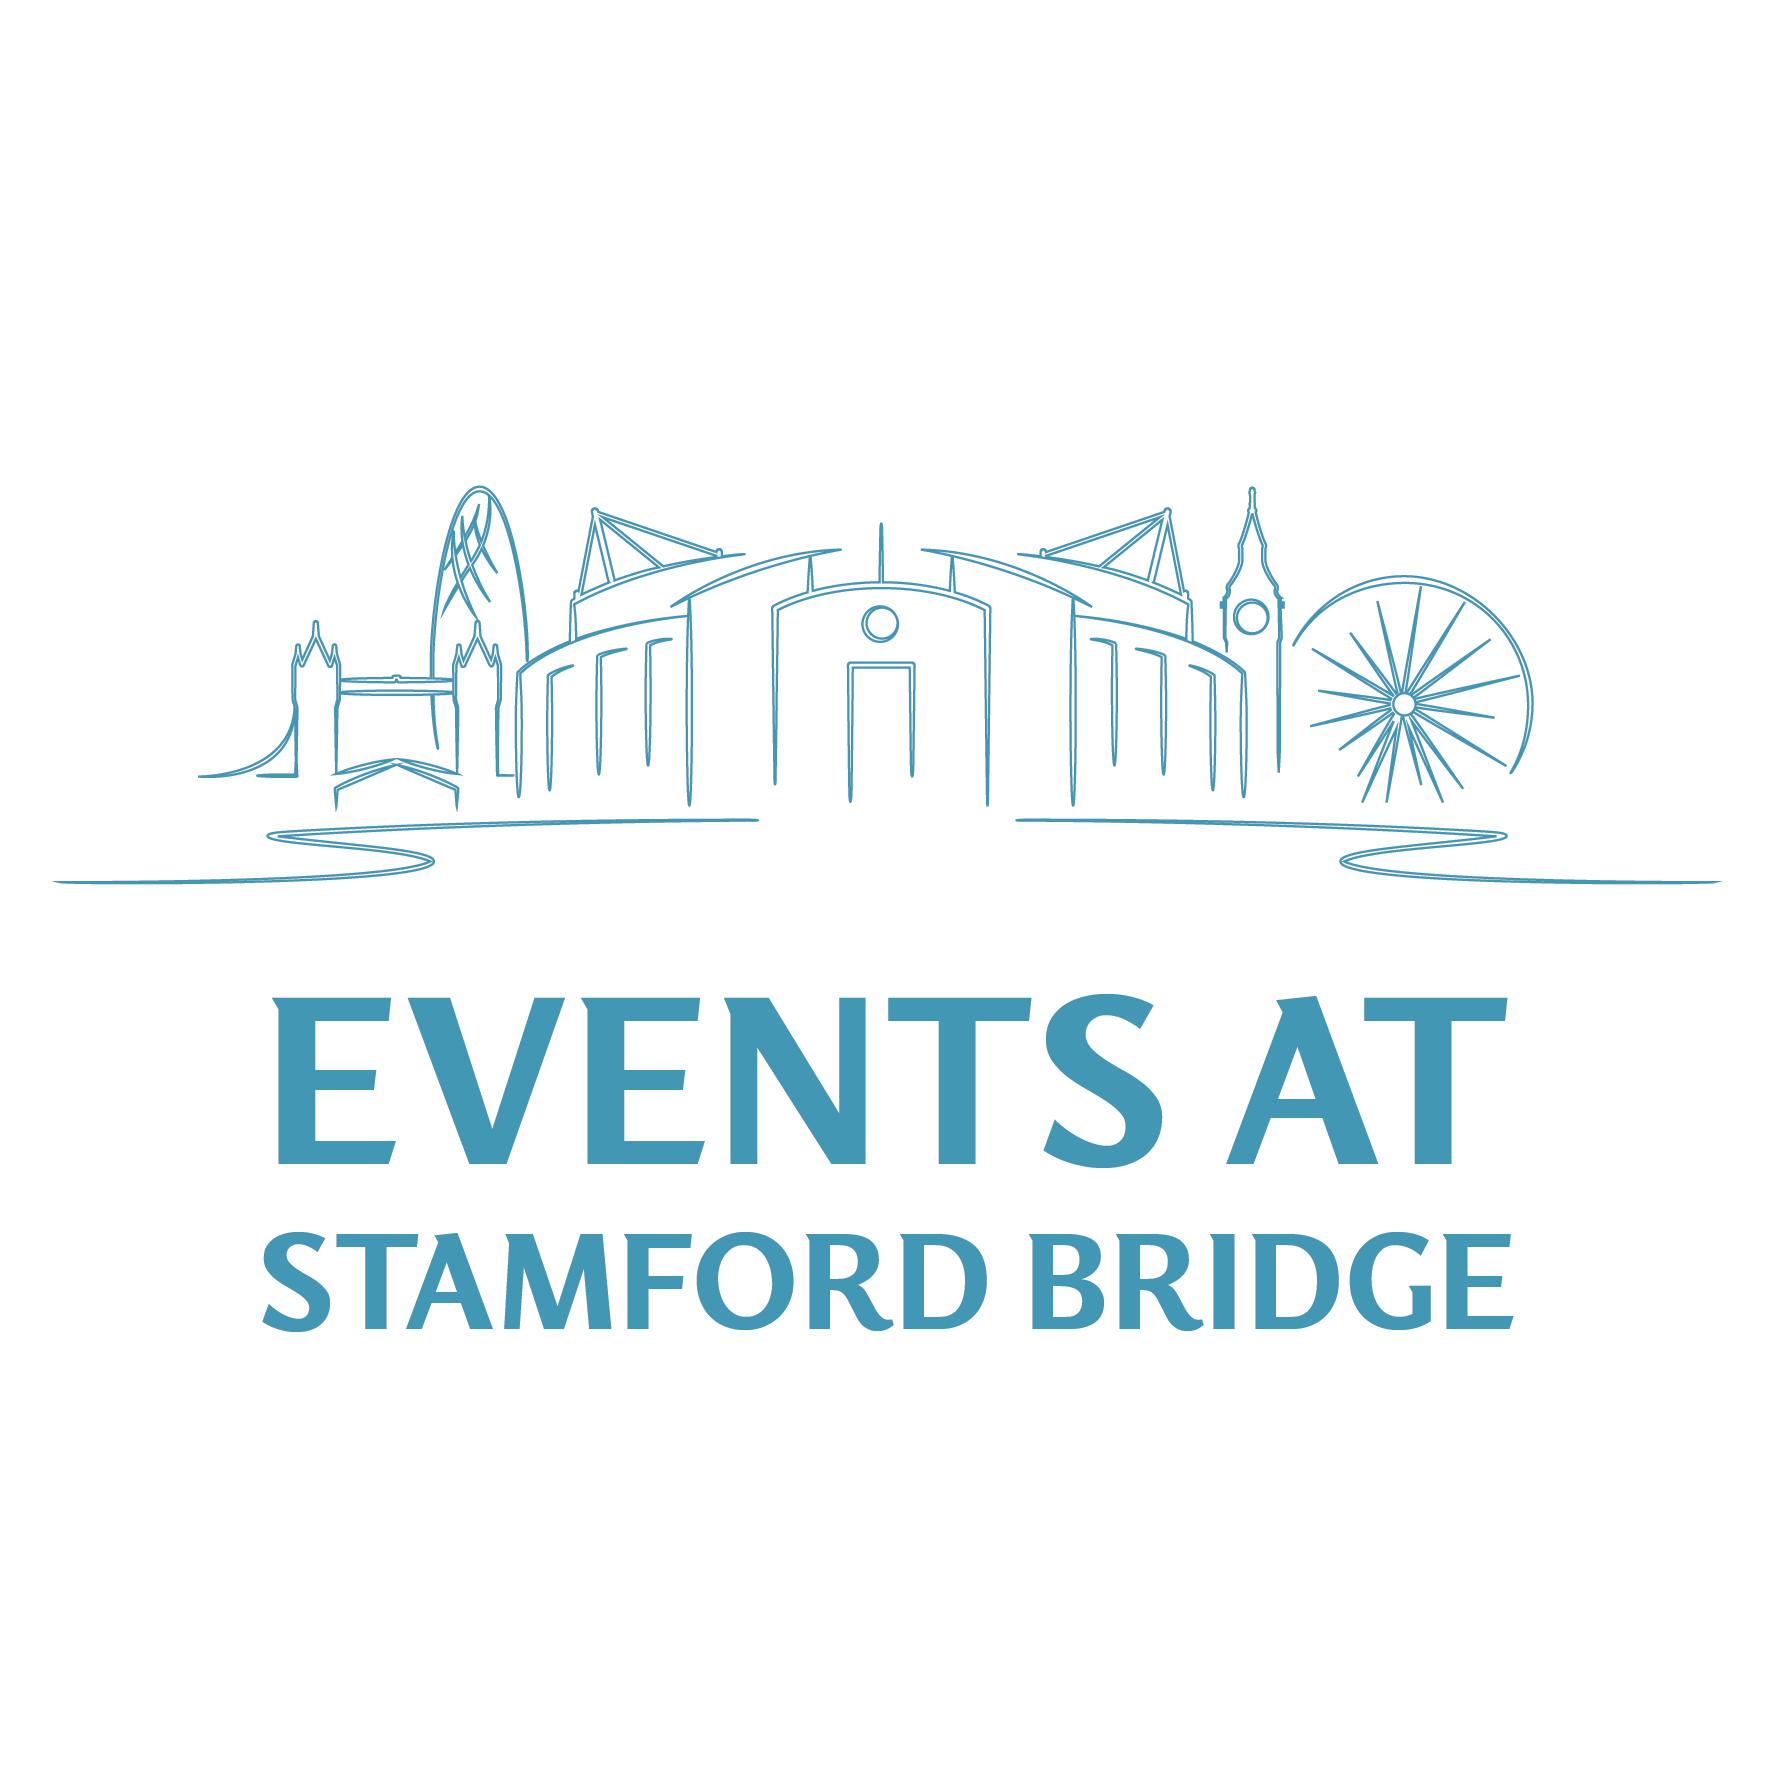 Events-at-stamford-bridge-logo-01